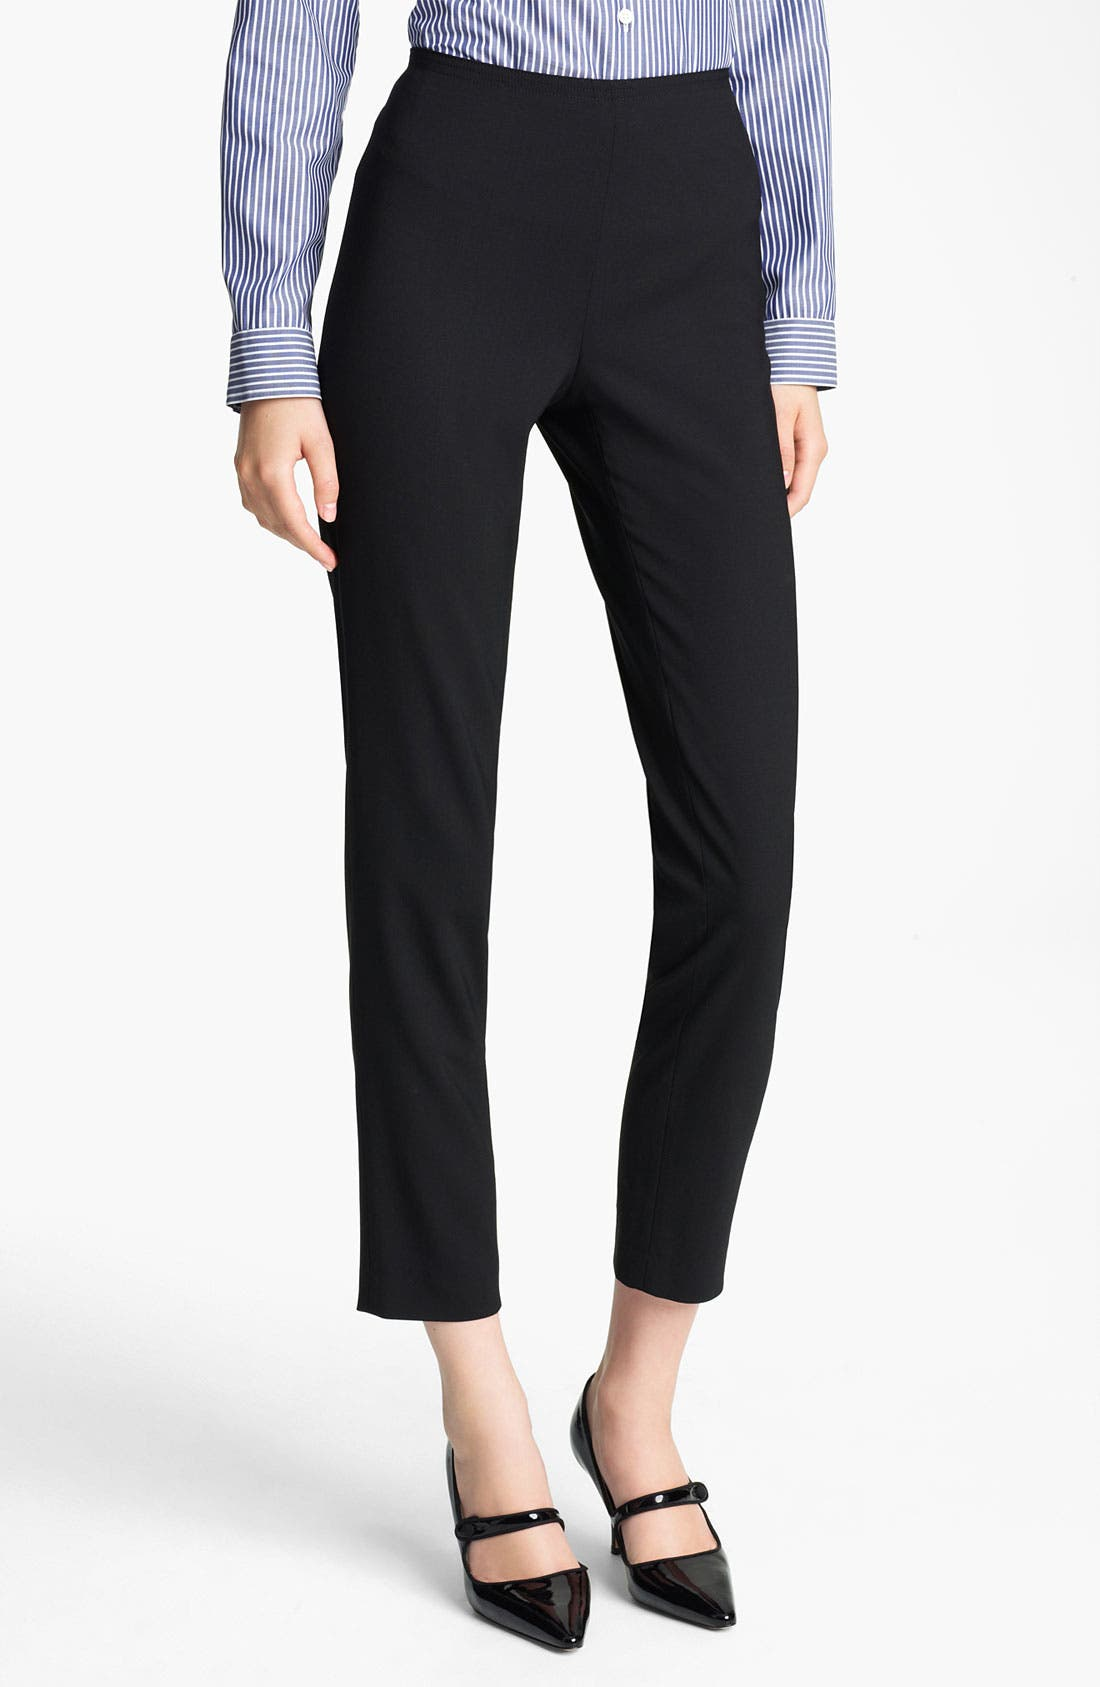 Main Image - Jil Sander Navy Stretch Wool Ankle Pants